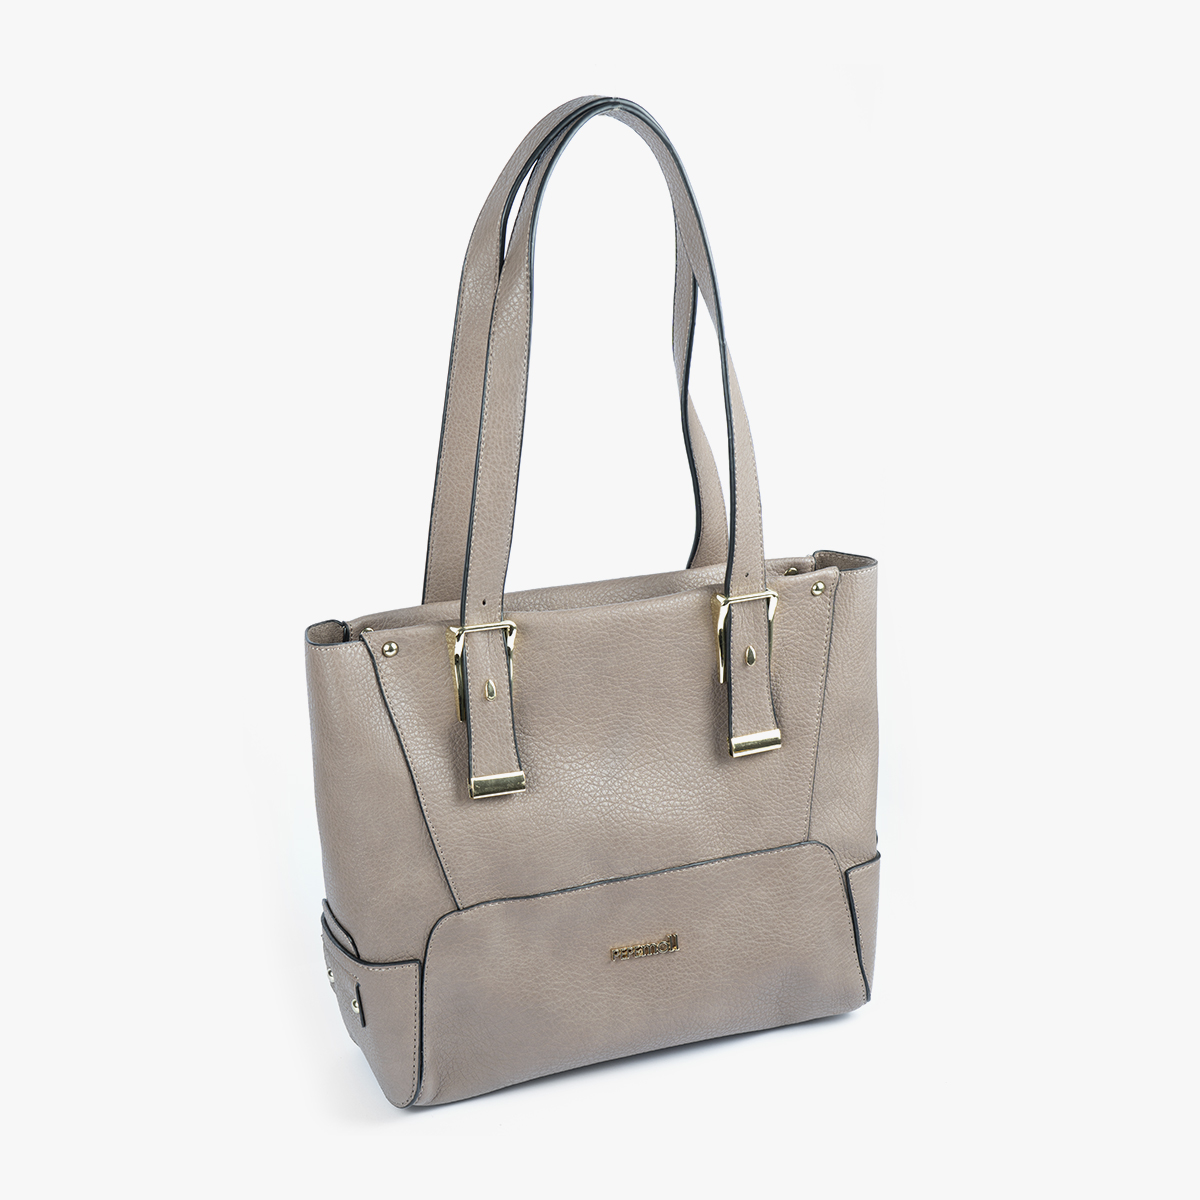 41123 mirage taupe perfil